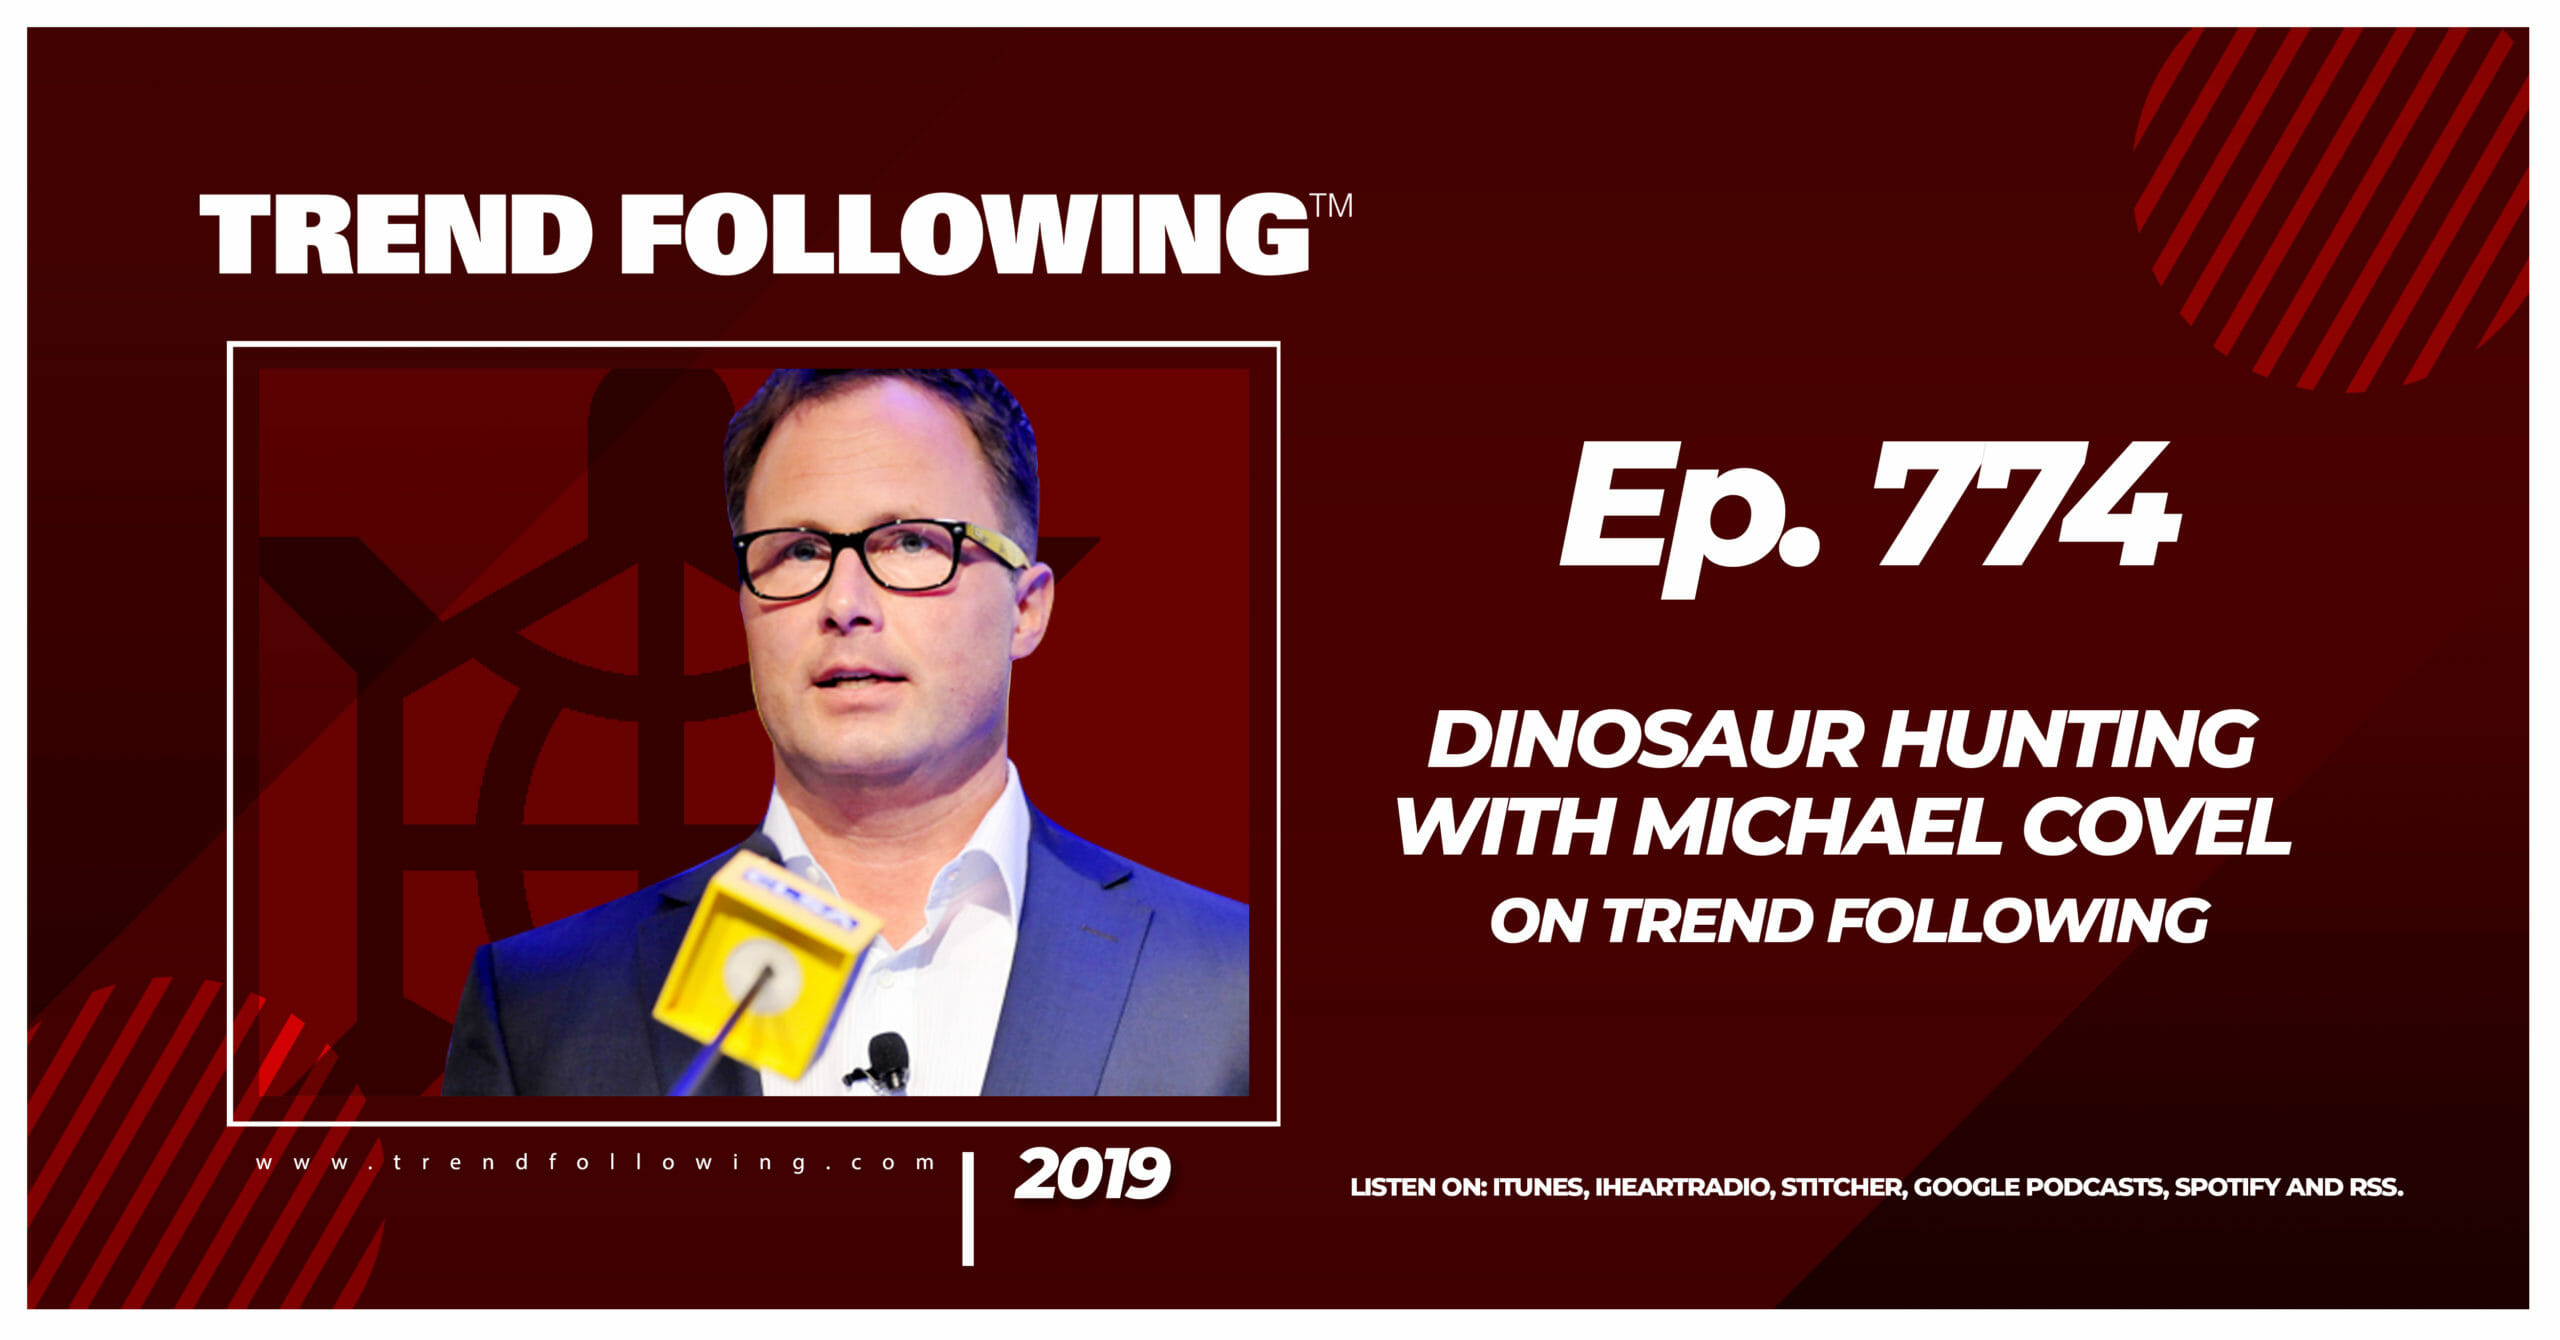 Dinosaur Hunting with Michael Covel